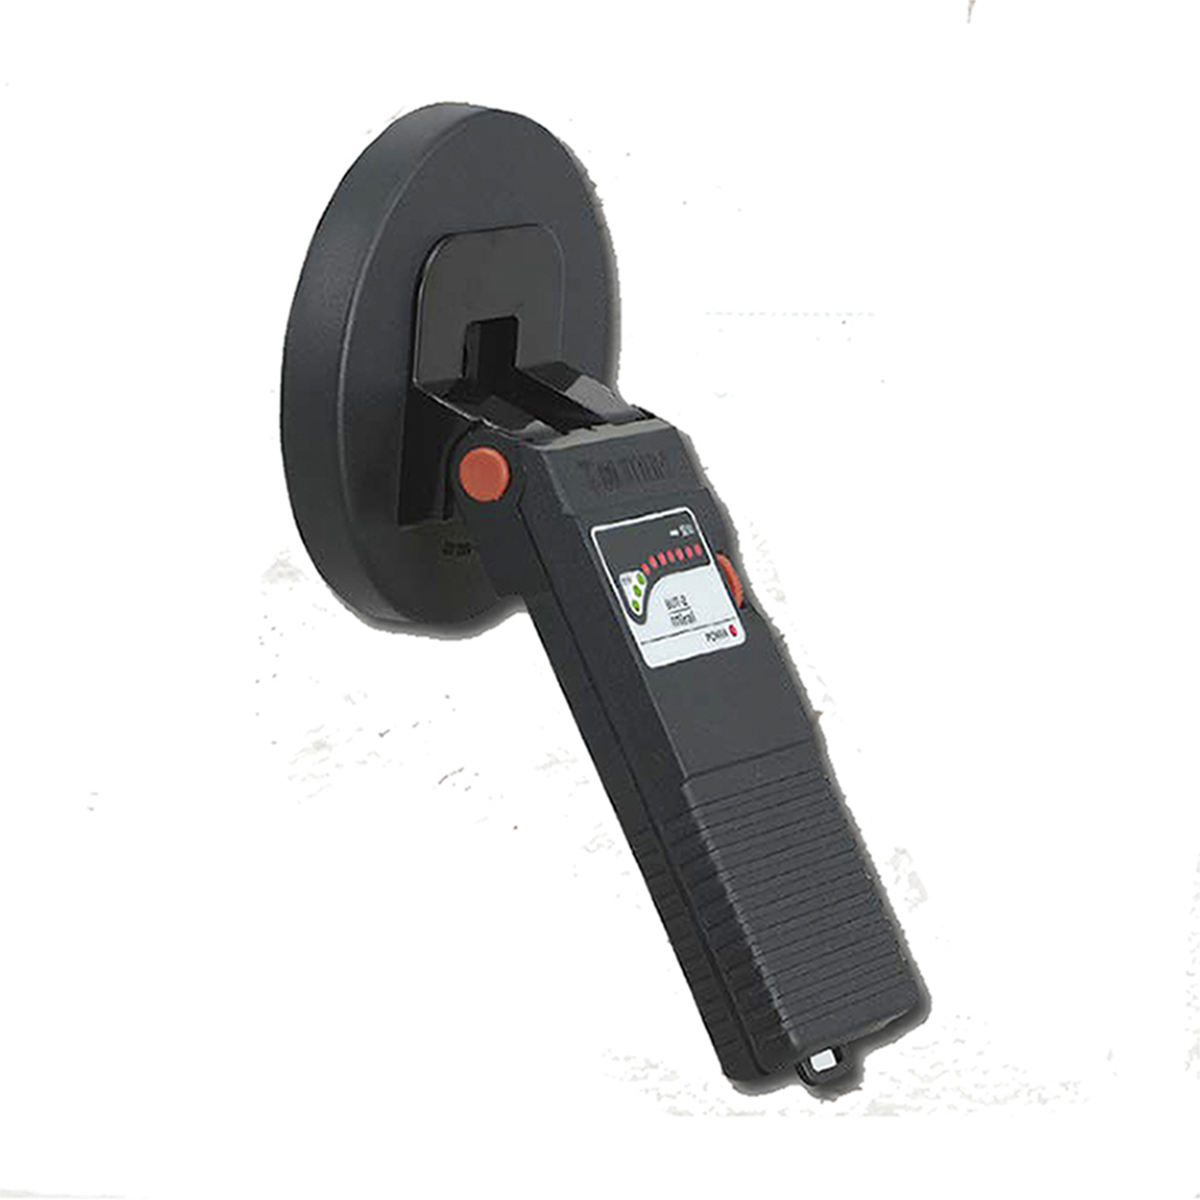 Round detection surface BUT-2 baratos profesional detector de metales with a power lamp